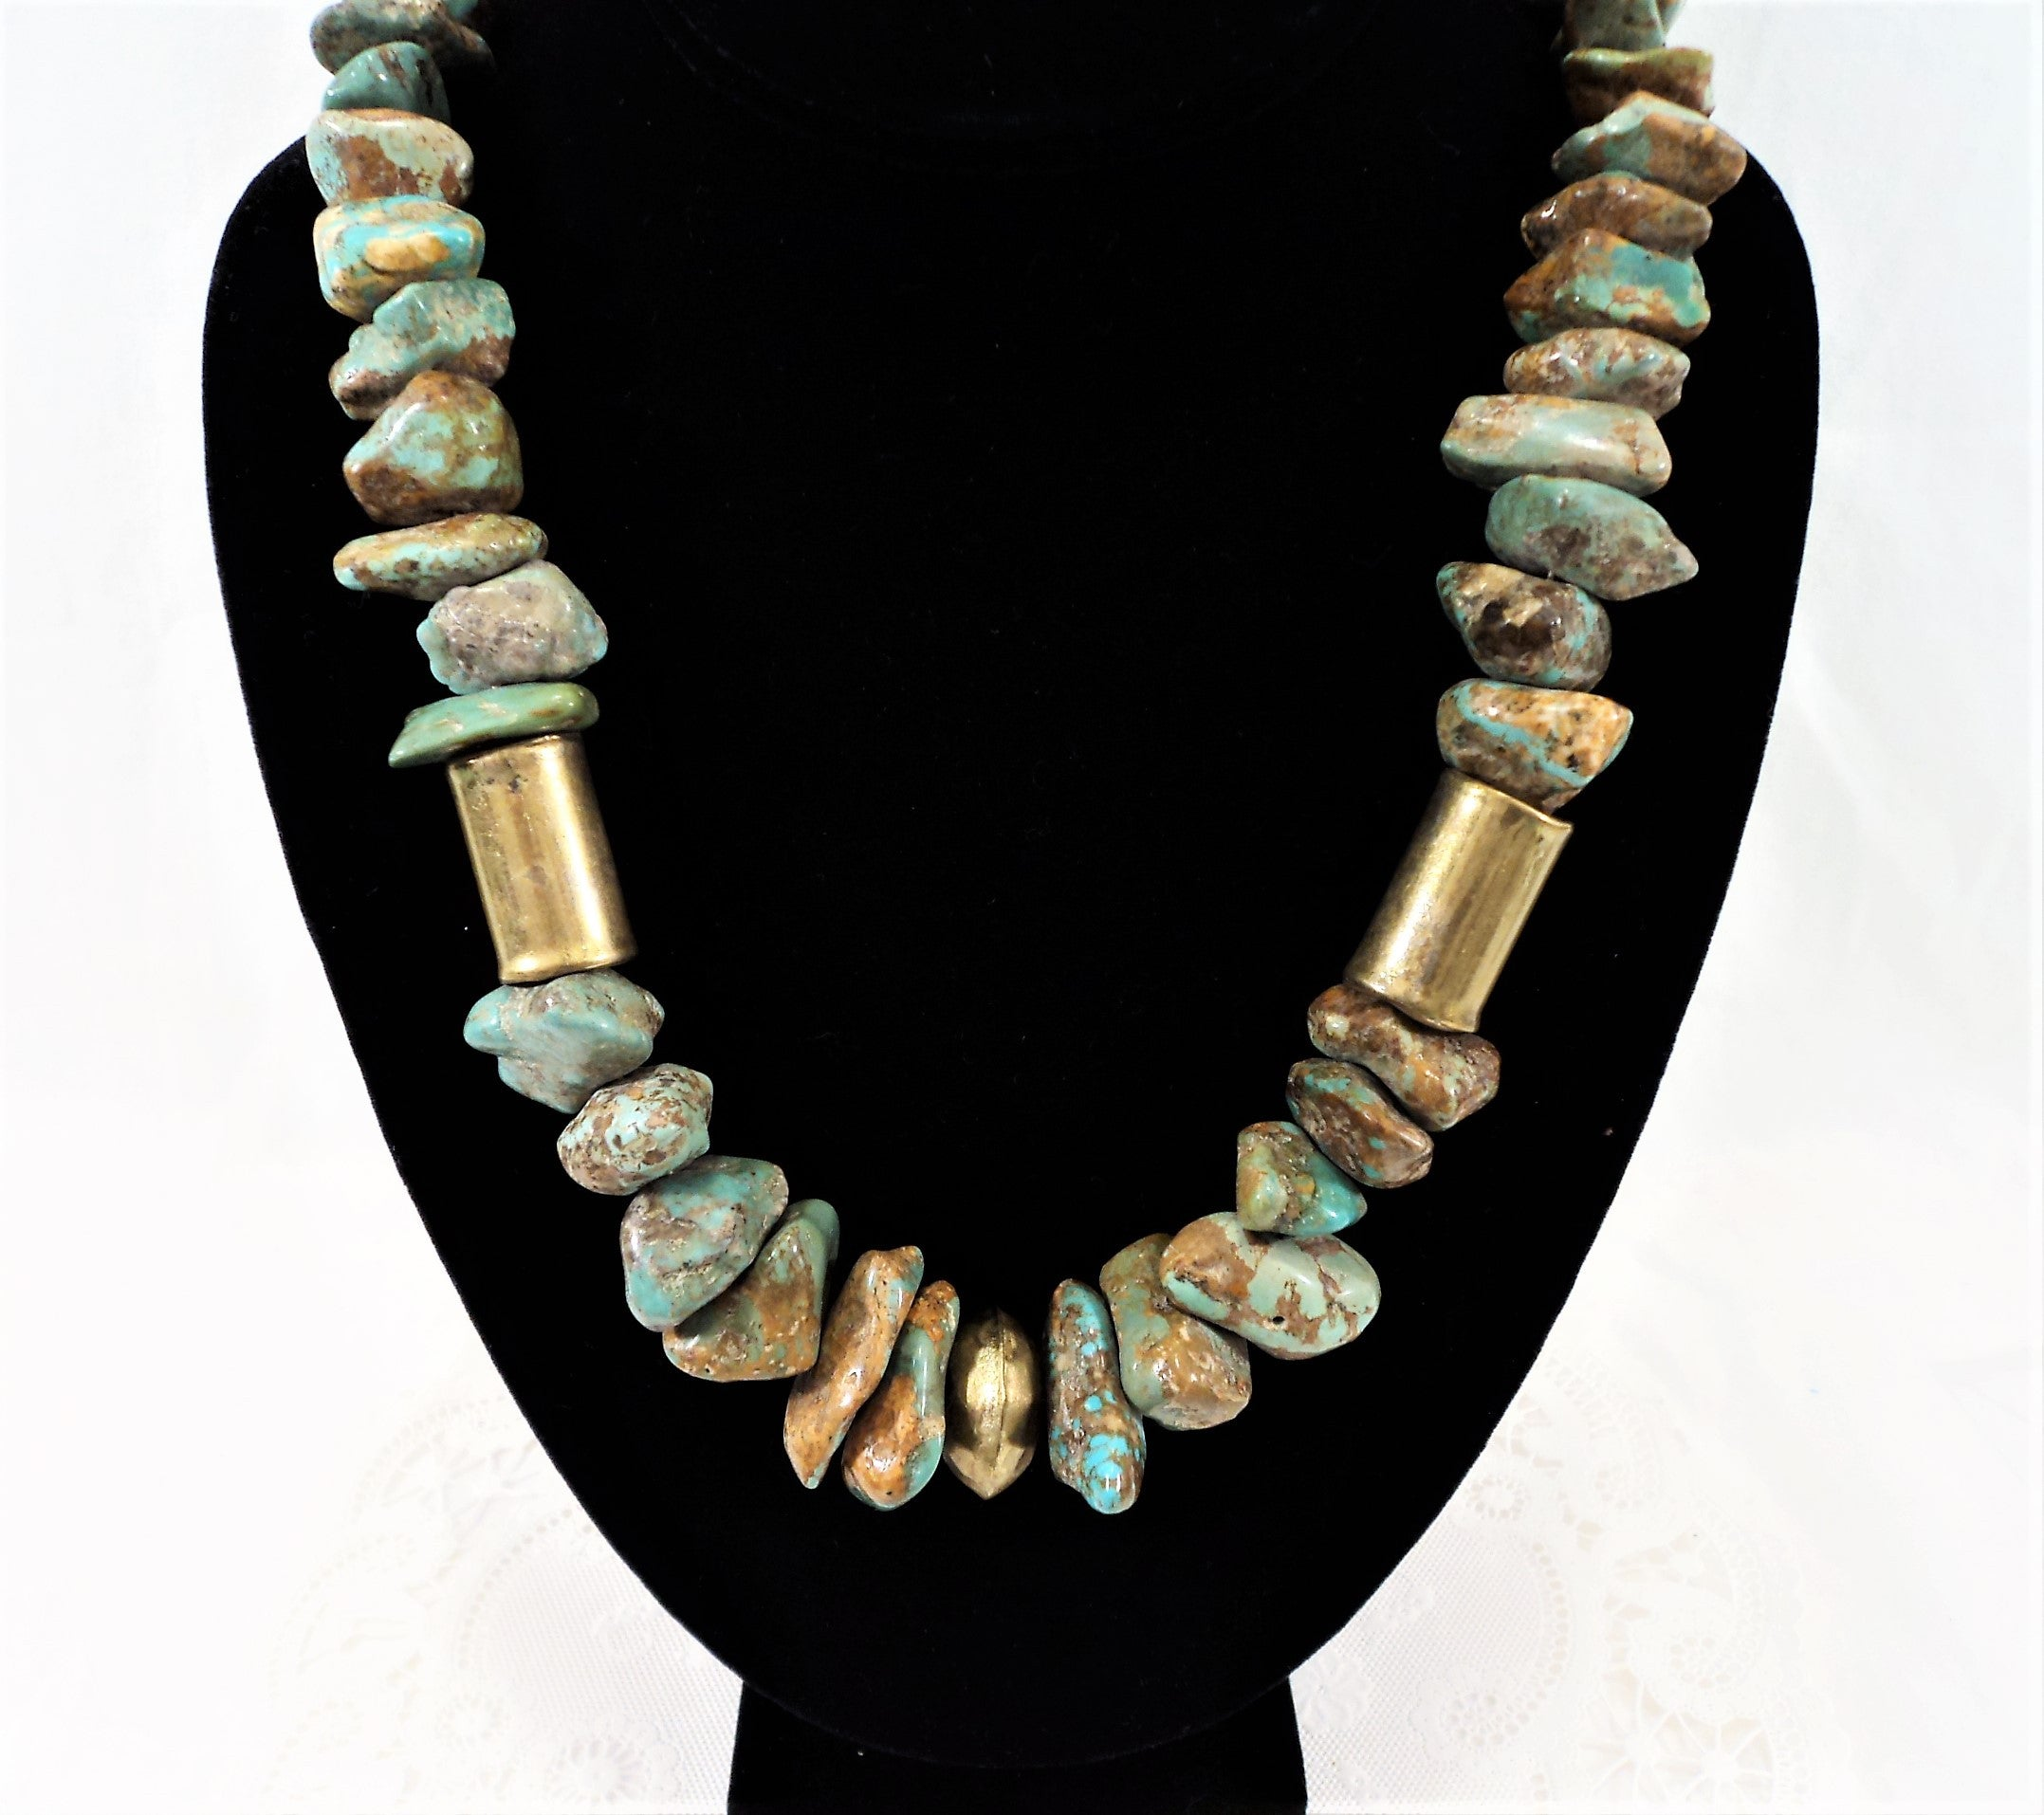 Vintage Native American Brass Beads and Turquoise Nuggets Necklace